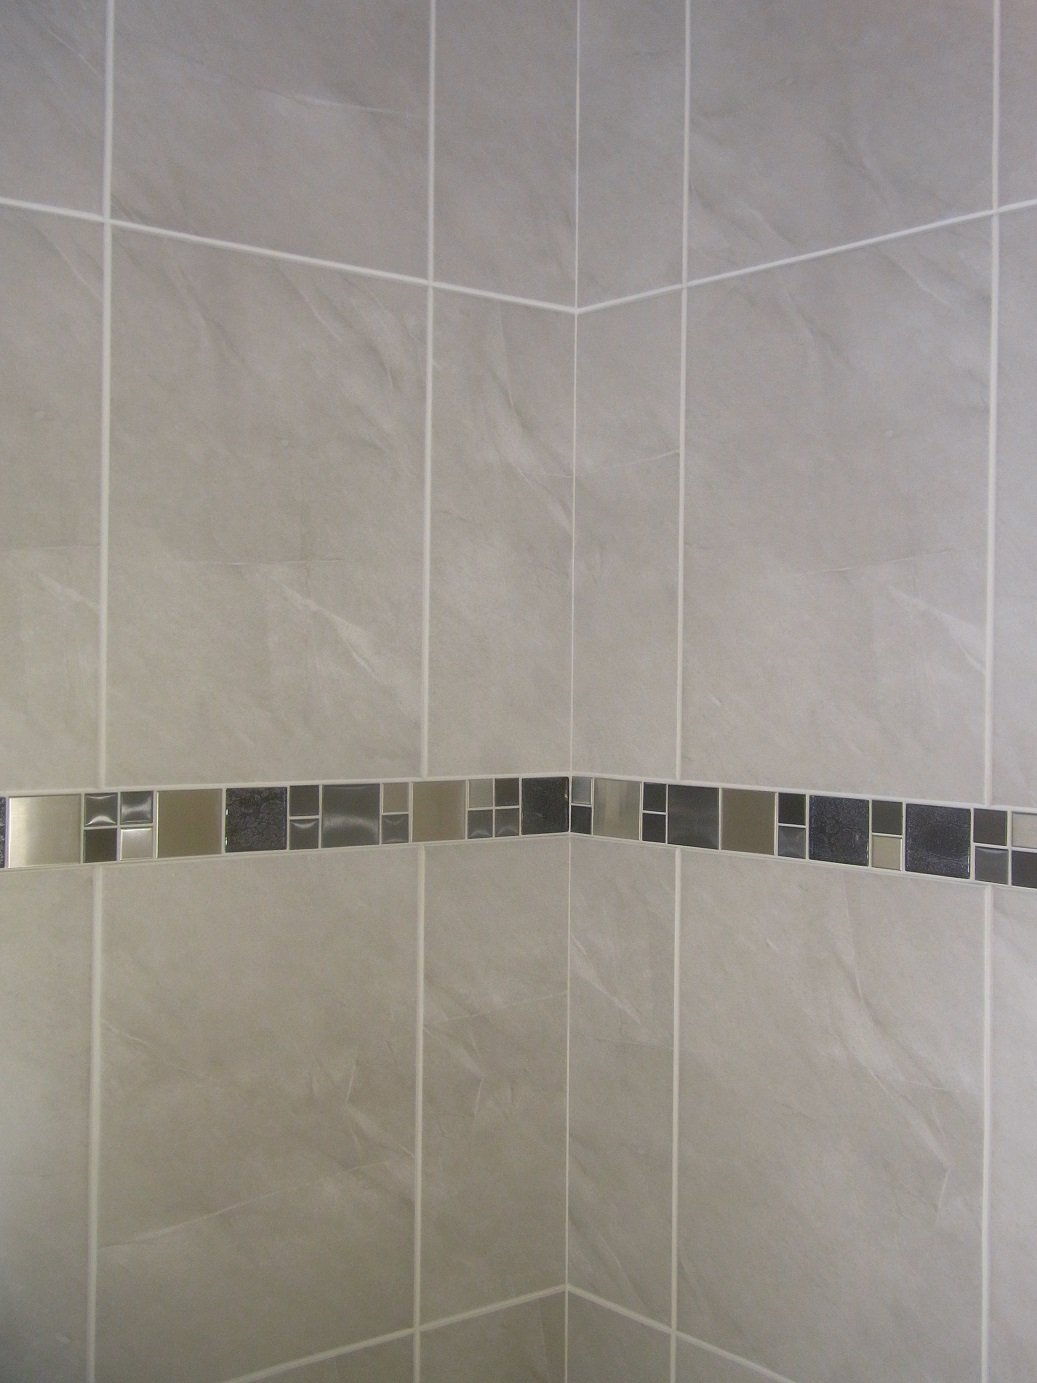 20m2 Stone Effect Grey Ceramic Bathroom Wall Tile Deal Inc Stunning  Borders: Amazon.co.uk: DIY U0026 Tools Part 56